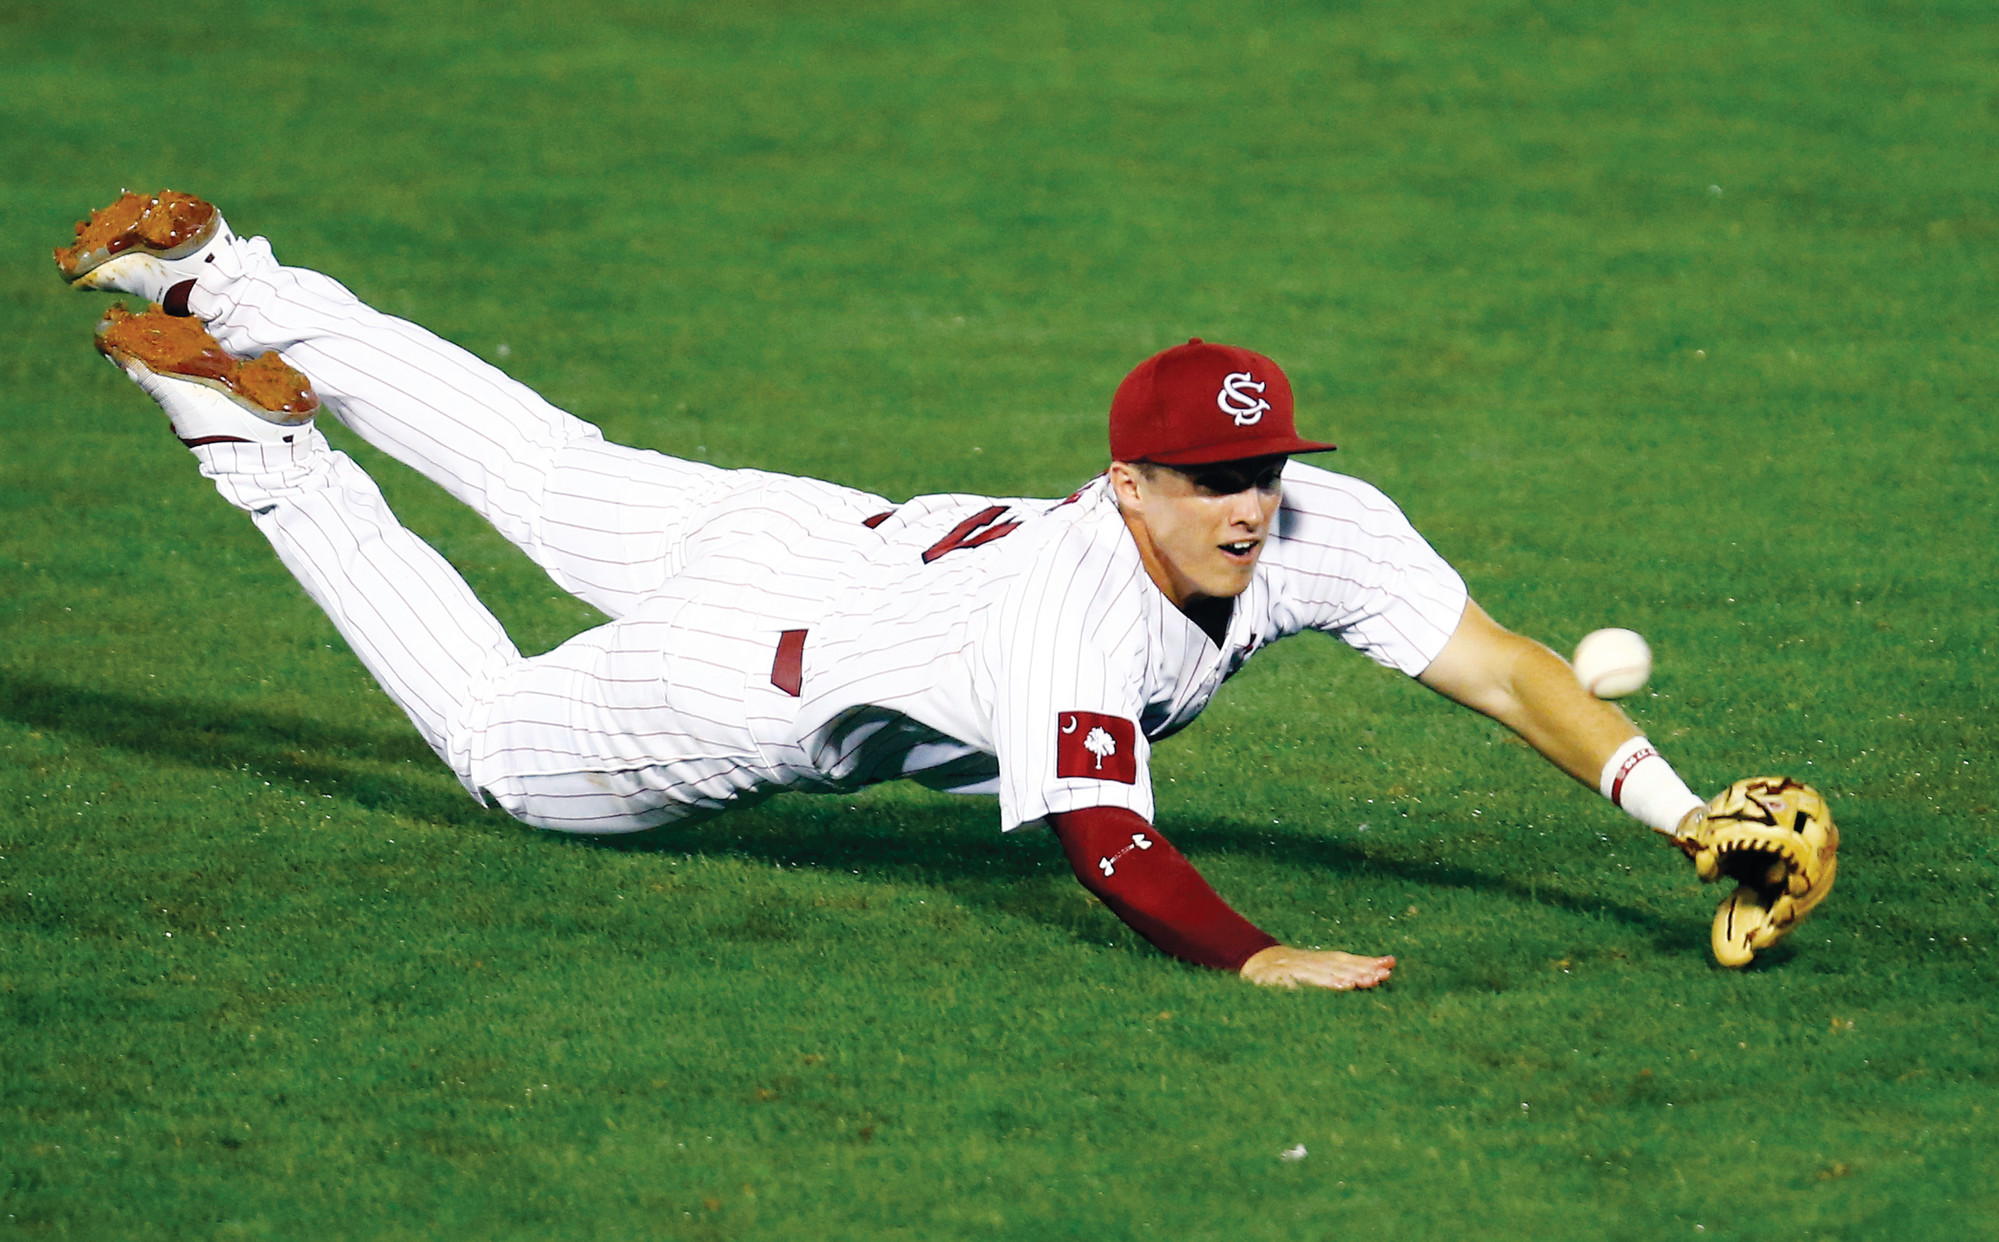 THE ASSOCIATED PRESS  South Carolina infielder Justin Row dives for a ground ball during the fourth inning of the Gamecocks' 4-2 victory over Missouri on Tuesday in the Southeastern Conference tournament on Tuesday in Hoover, Alabama. USC was facing Arkansas on Wednesday.